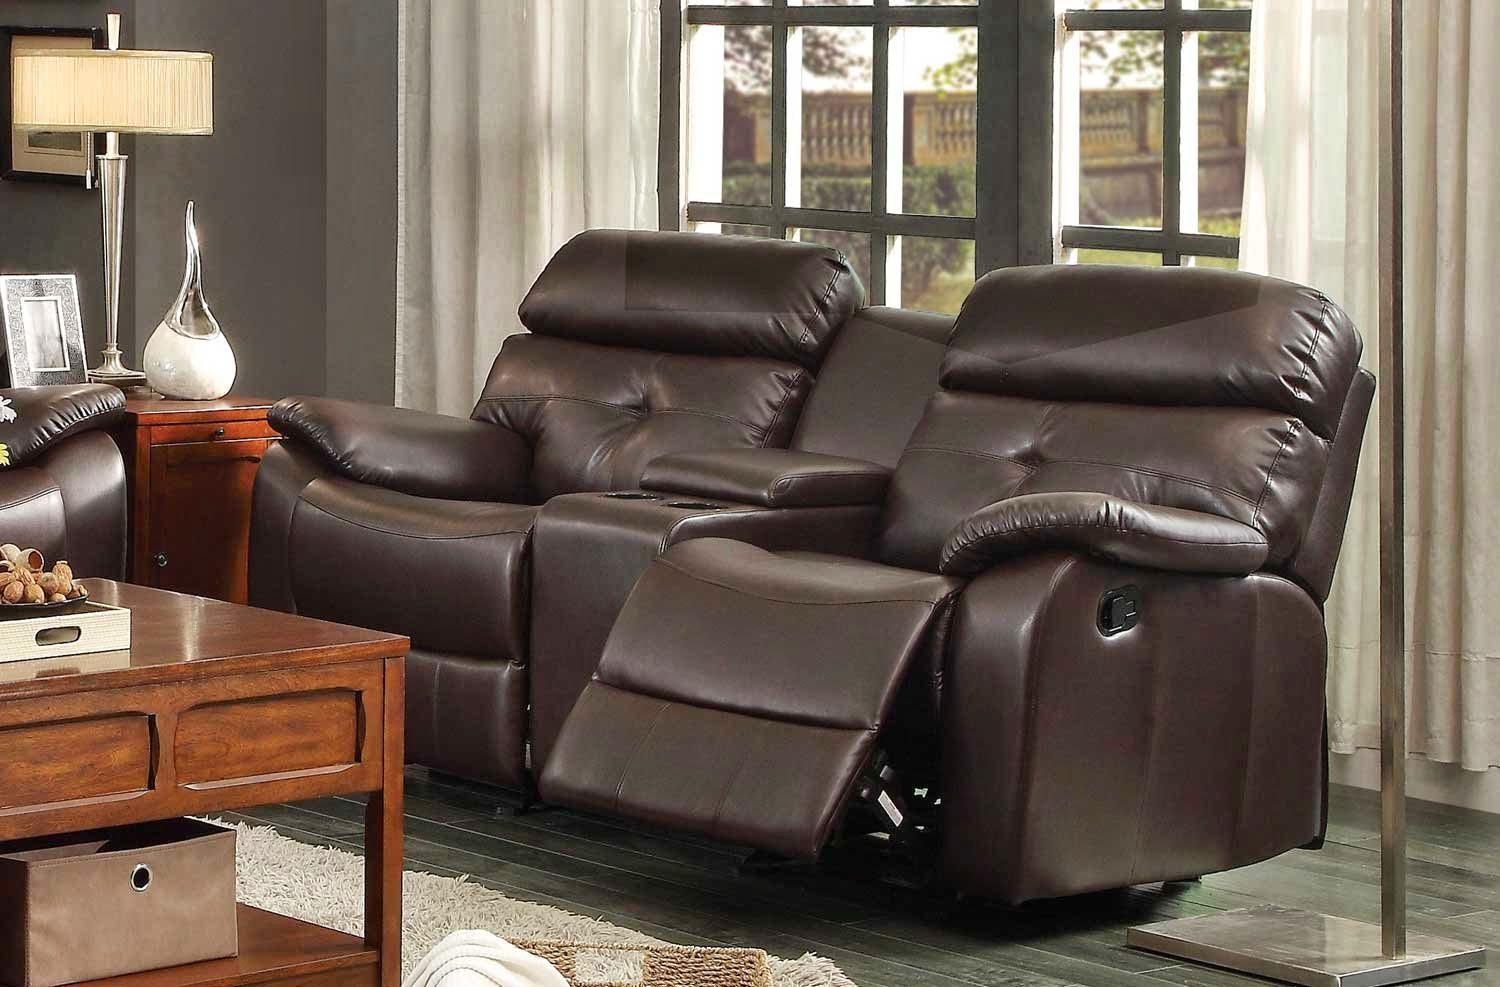 Cheap Recliner Sofas For Sale Curved Leather Reclining Sofa With Cup Holders